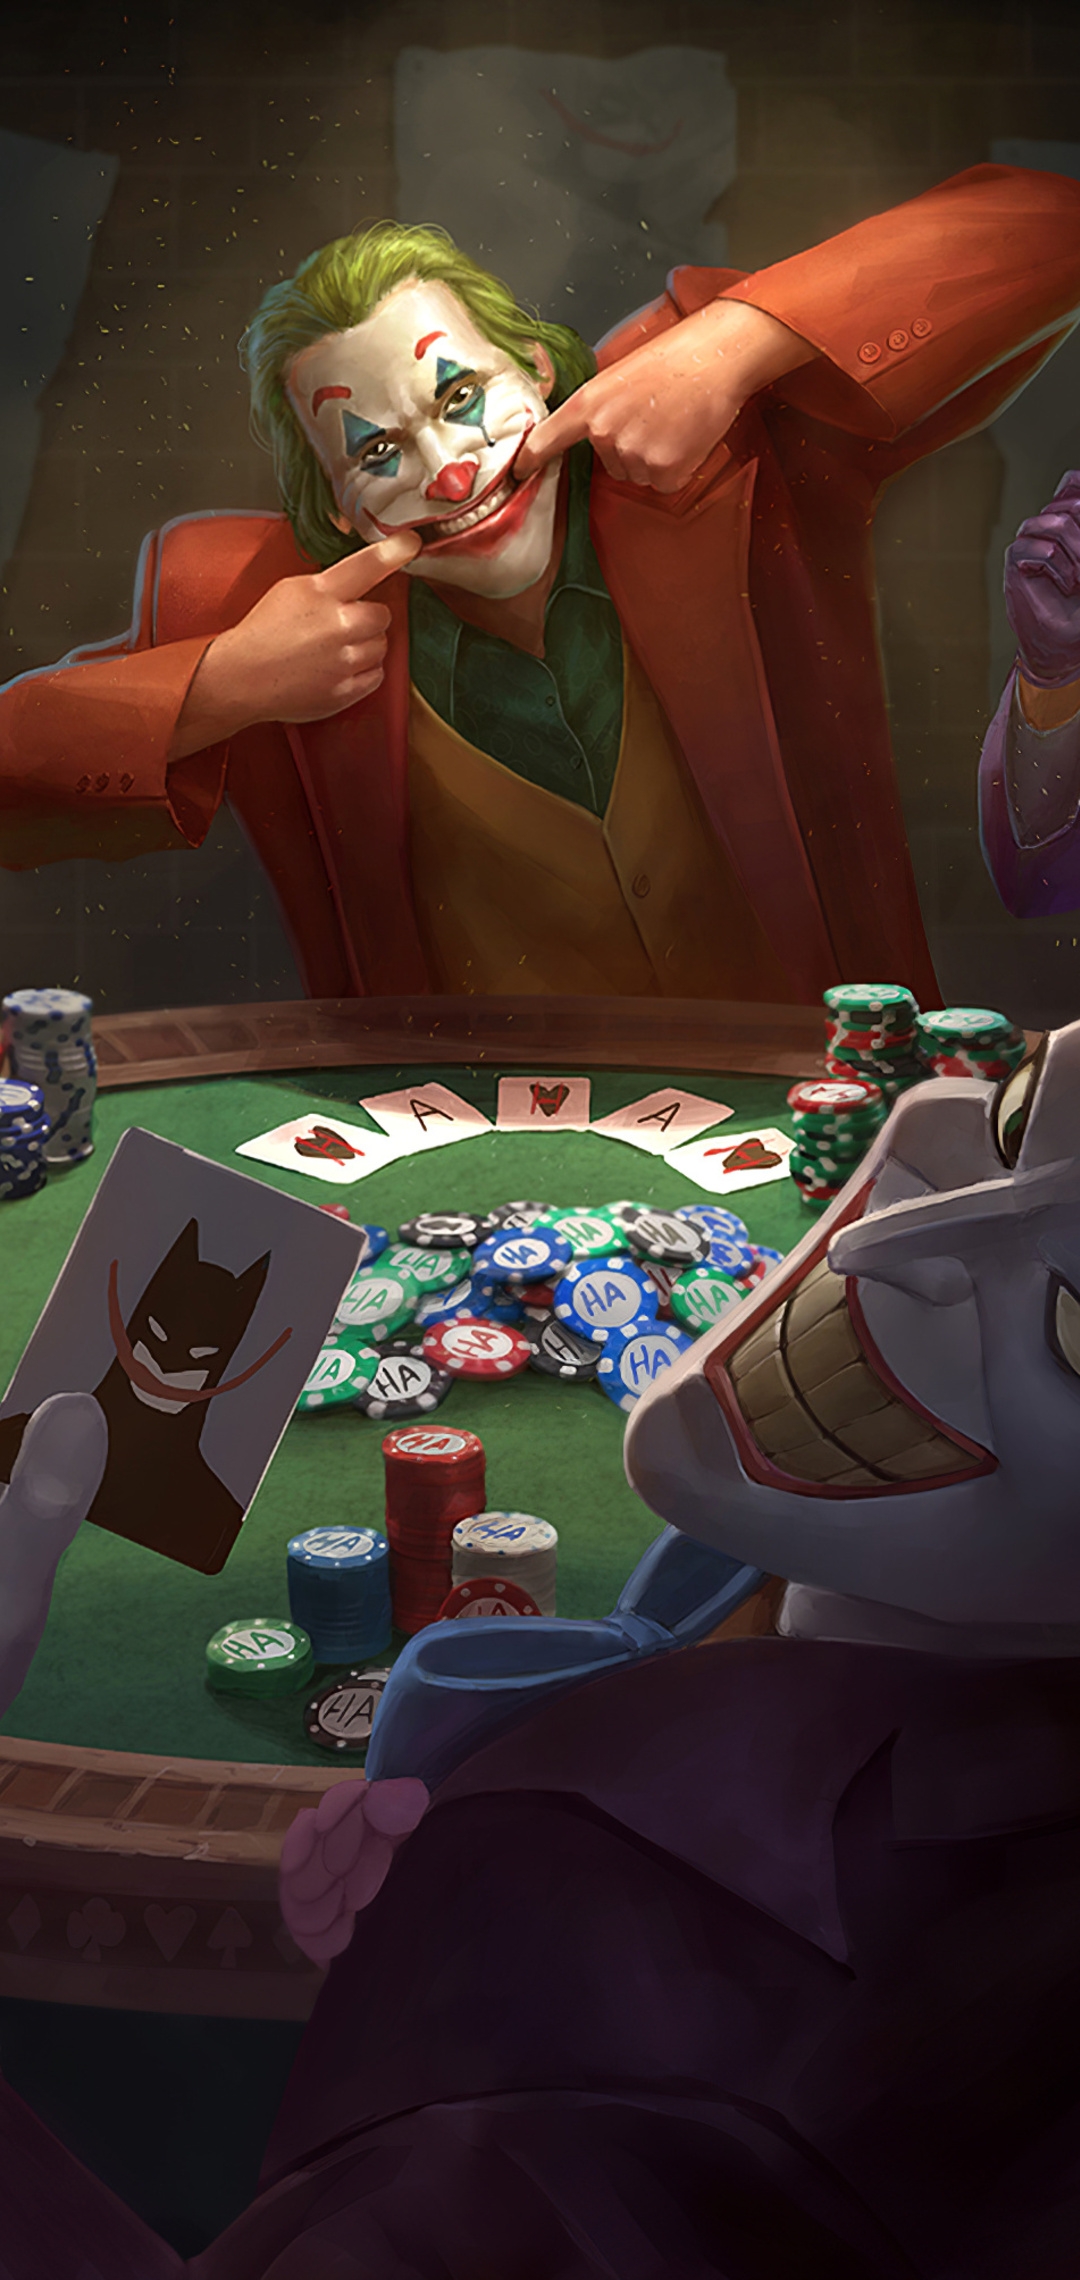 1080x2280 Joker Poker One Plus 6 Huawei P20 Honor View 10 Vivo Y85 Oppo F7 Xiaomi Mi A2 Hd 4k Wallpapers Images Backgrounds Photos And Pictures